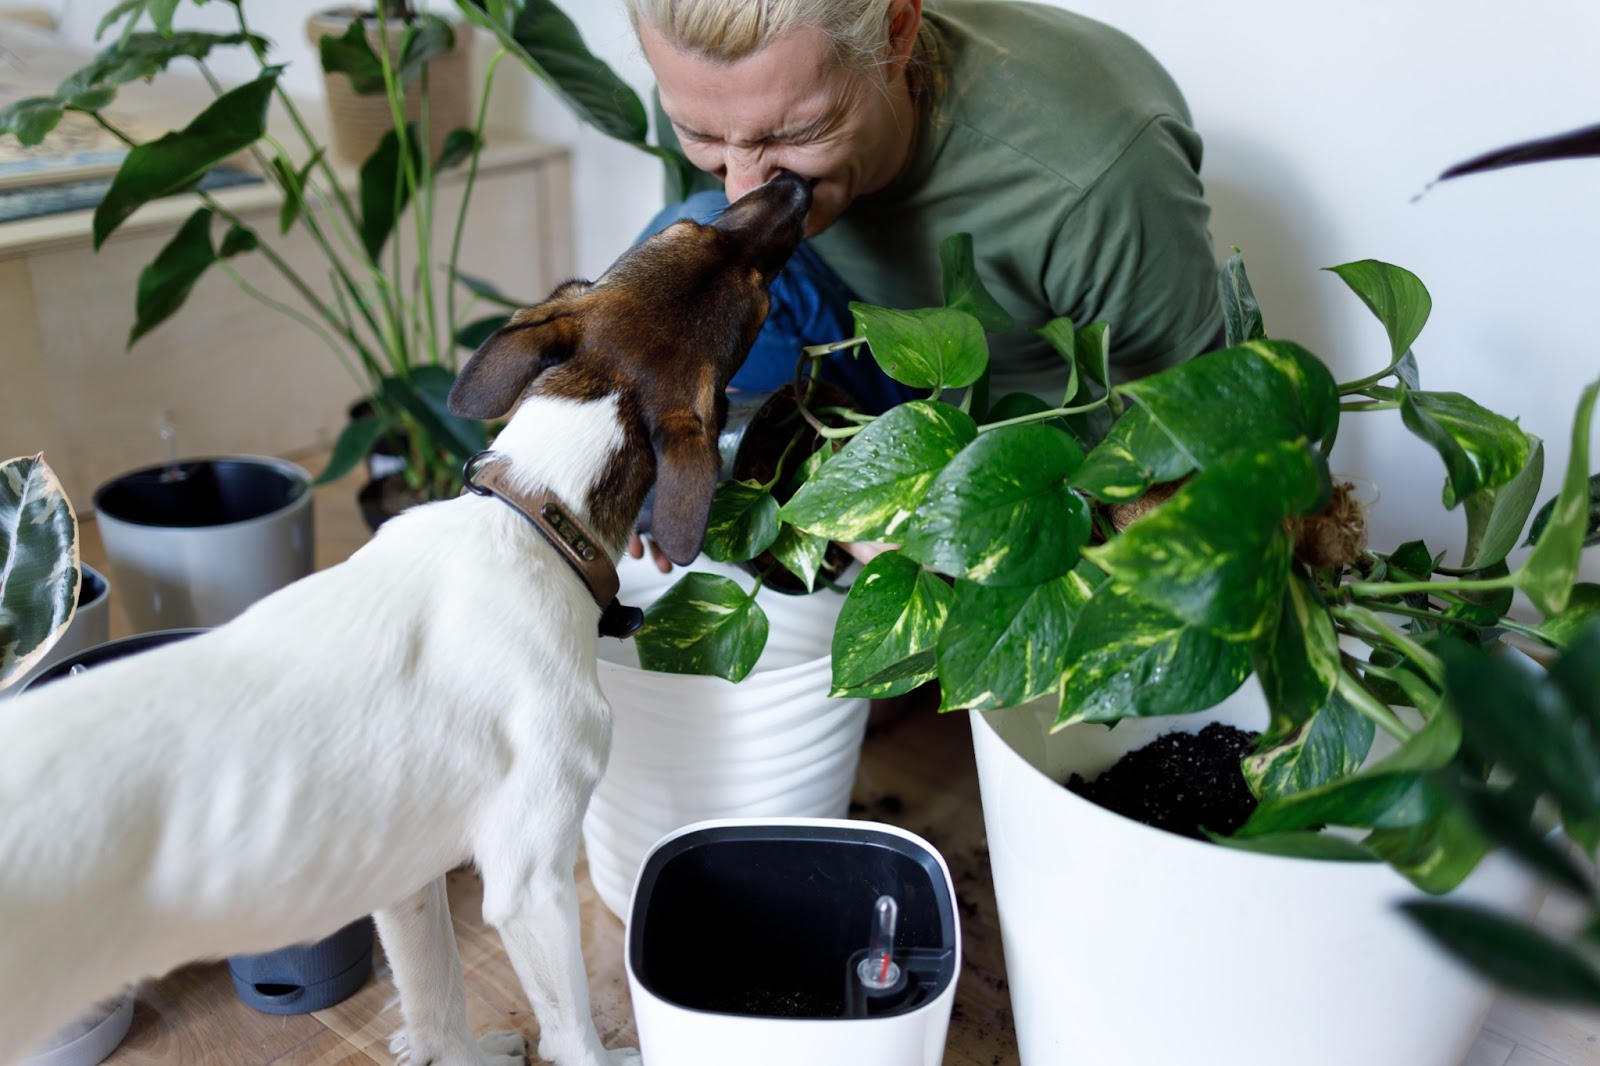 Dog with owner near plants